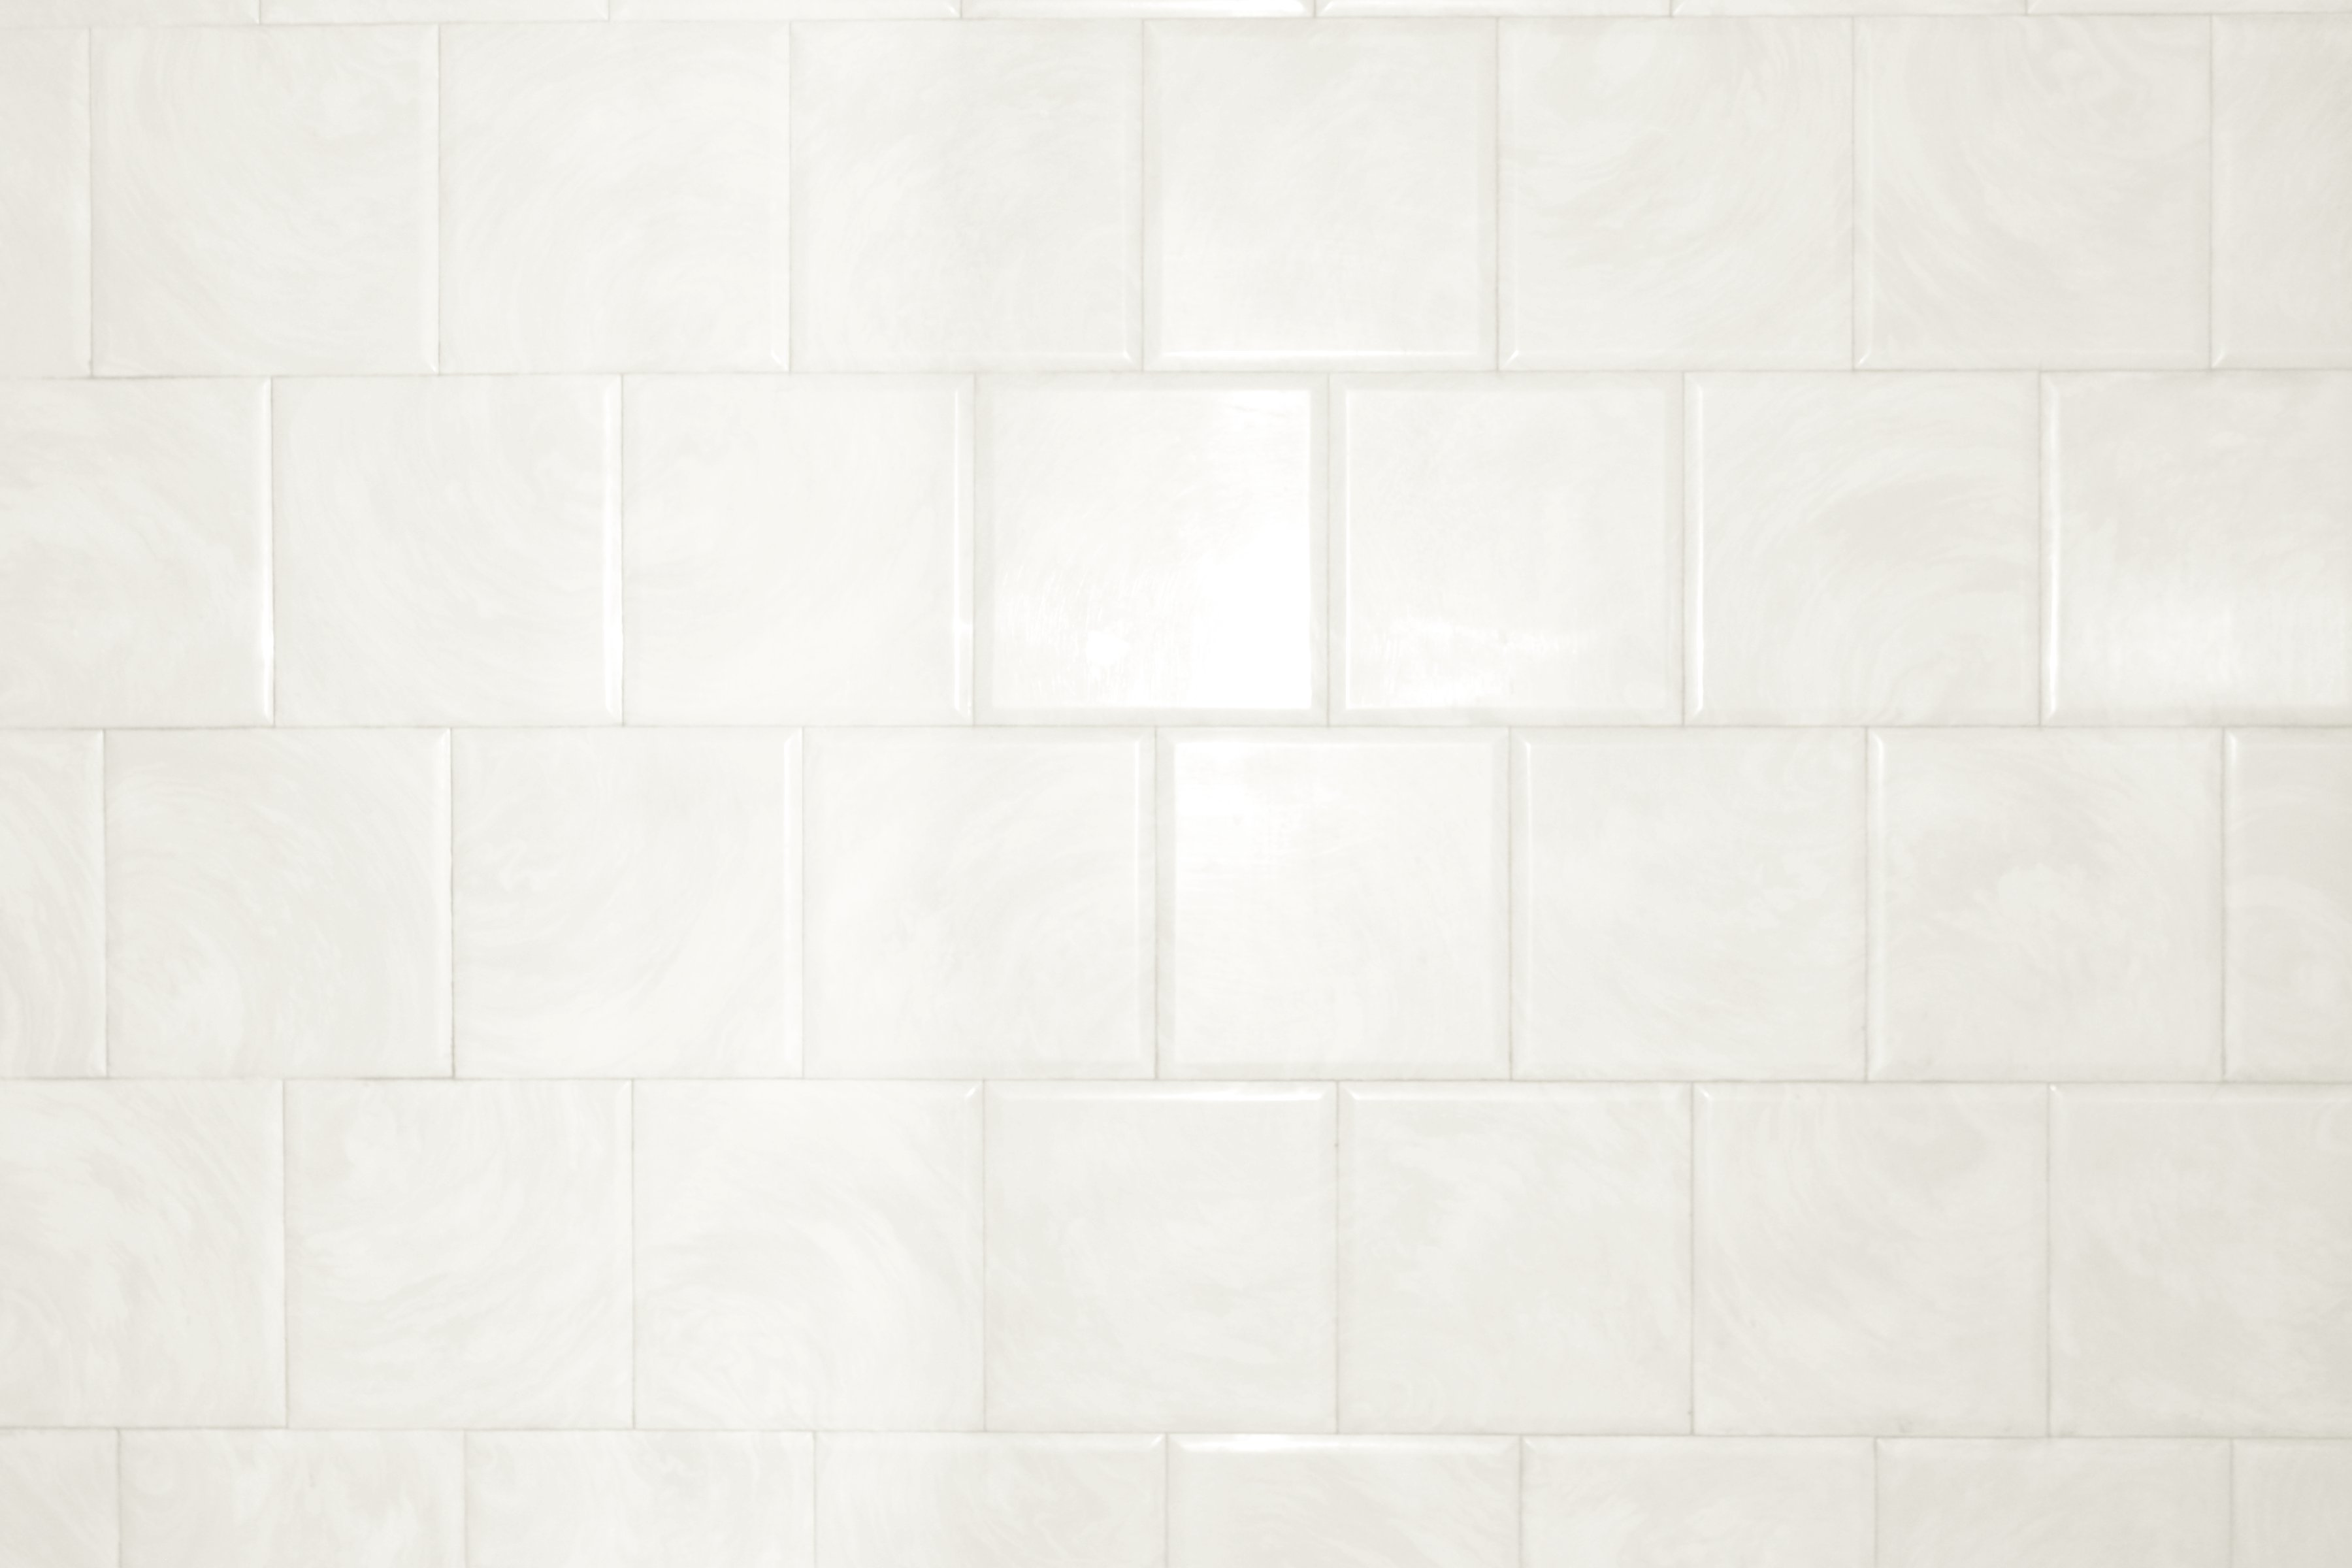 White Textured Wallpaper For Bathroom